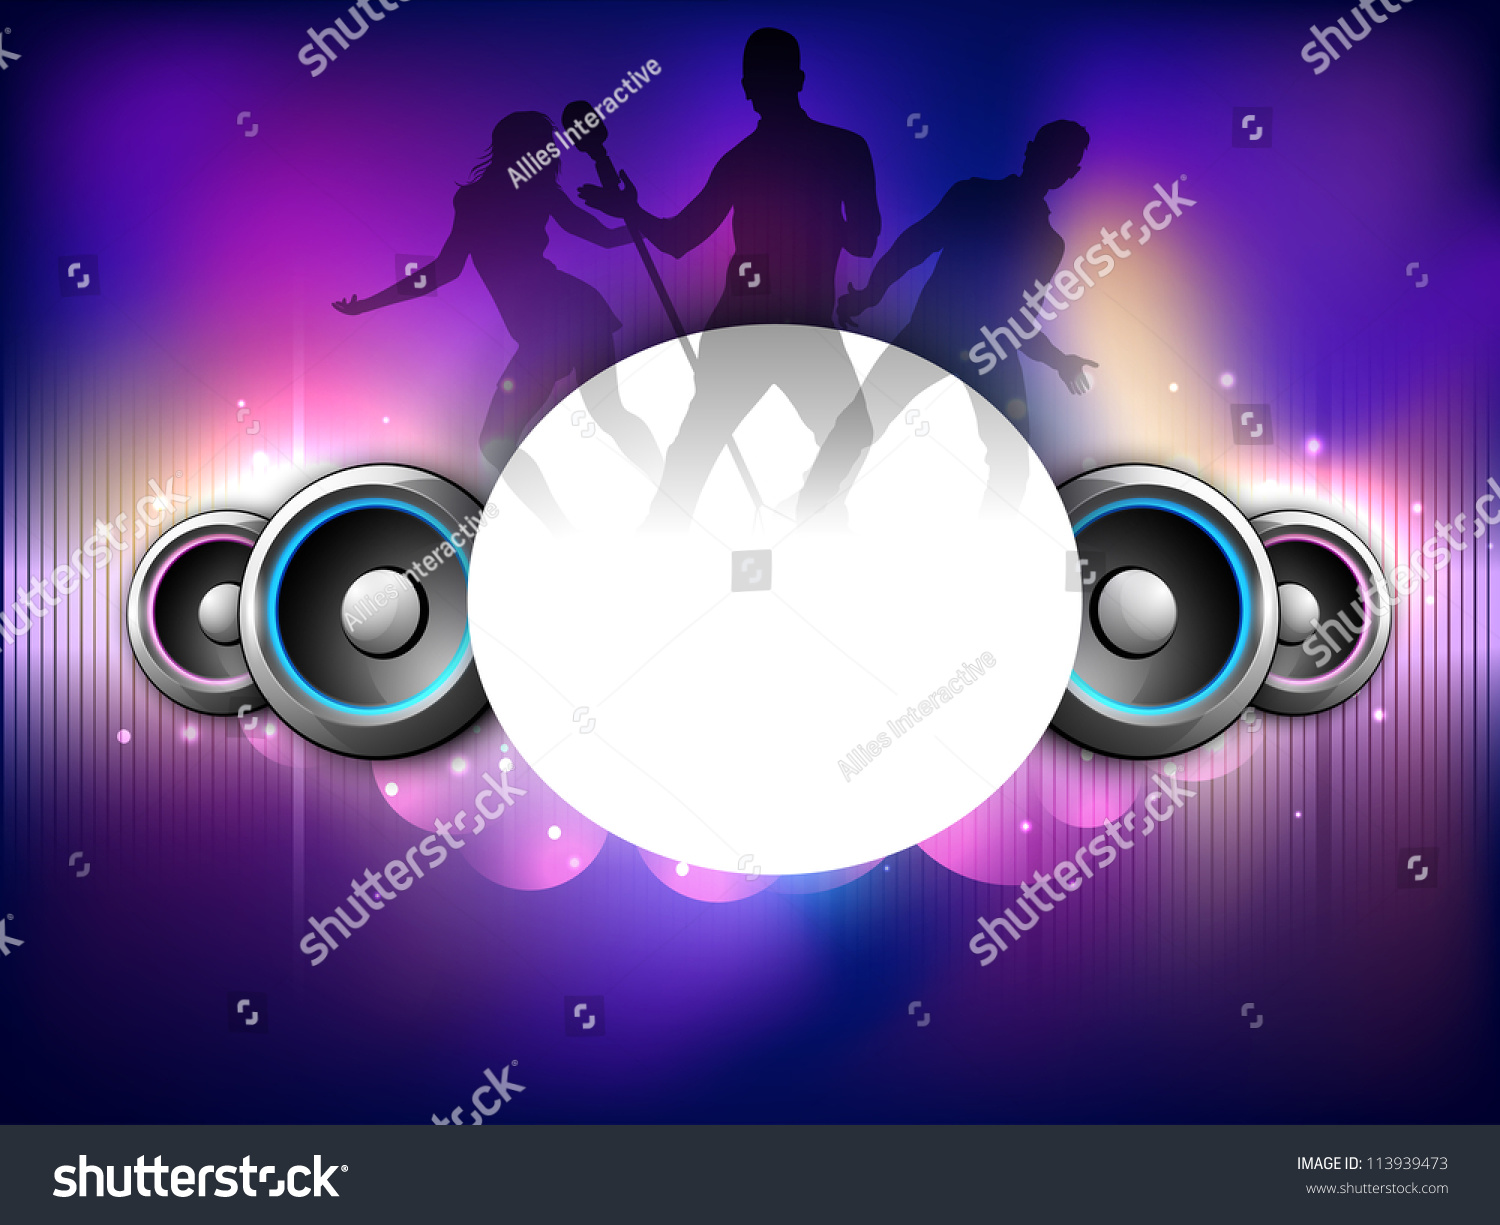 Silhouette Dance Music Abstract Background: Colorful Abstract Speakers Background Dancing Peoples